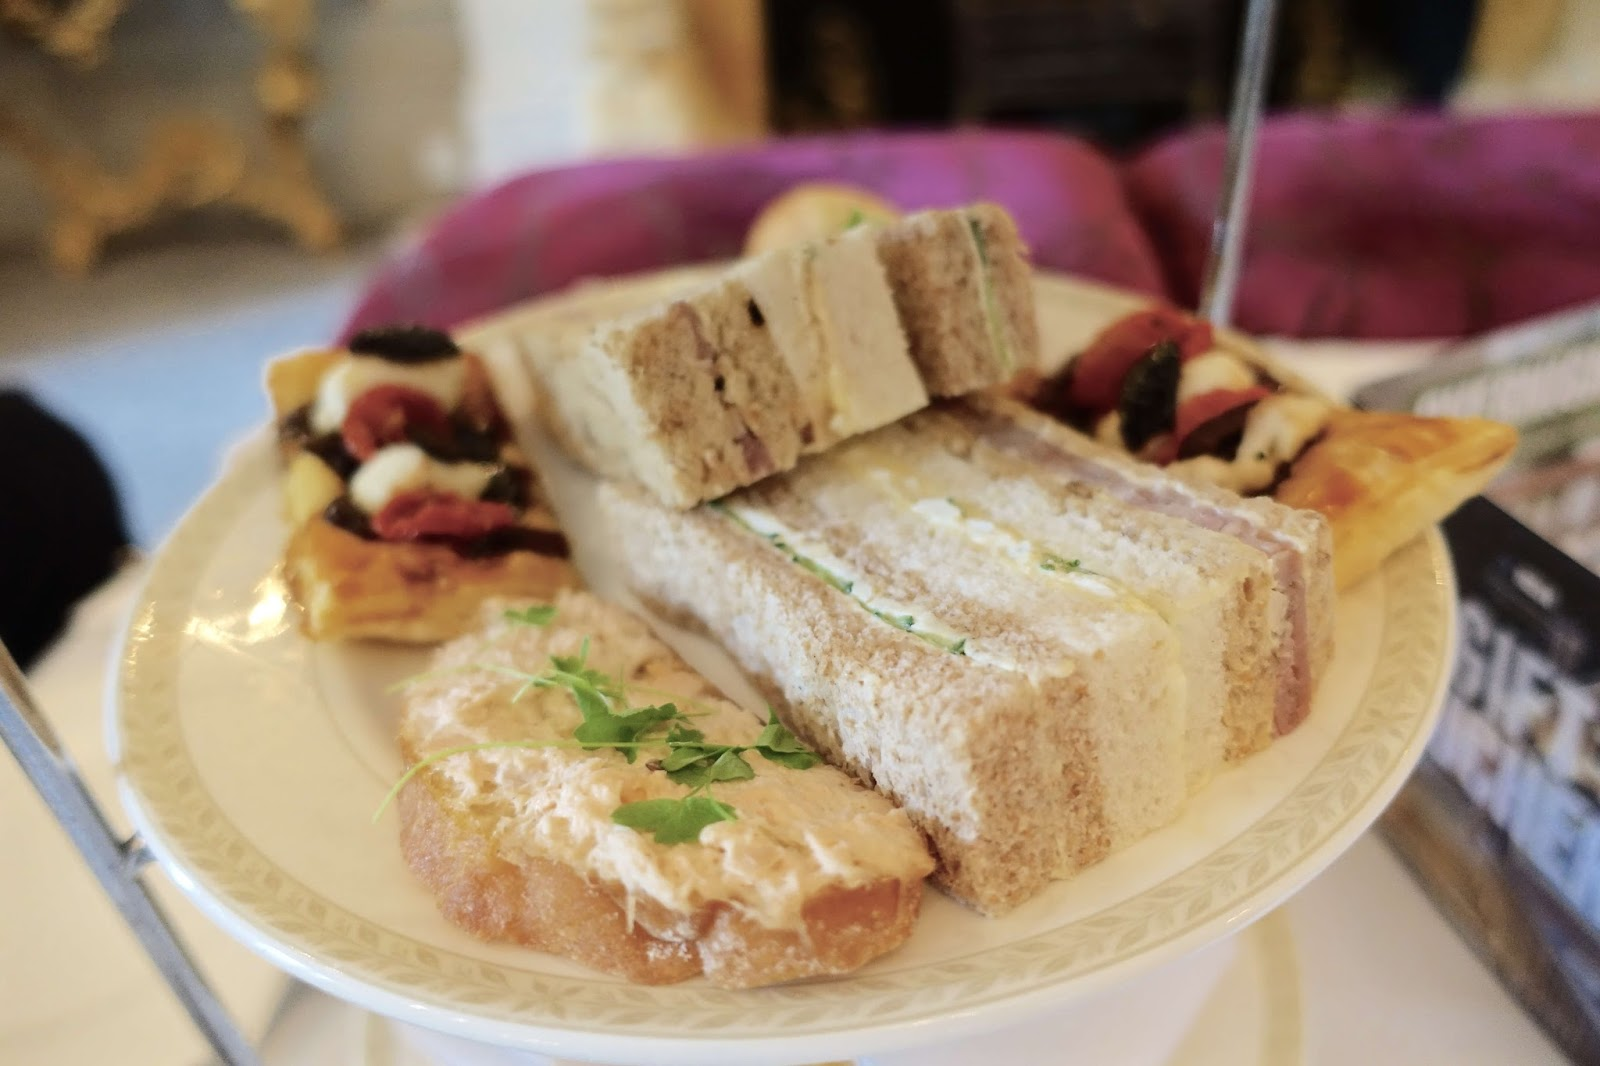 homemade sandwiches afternoon tea